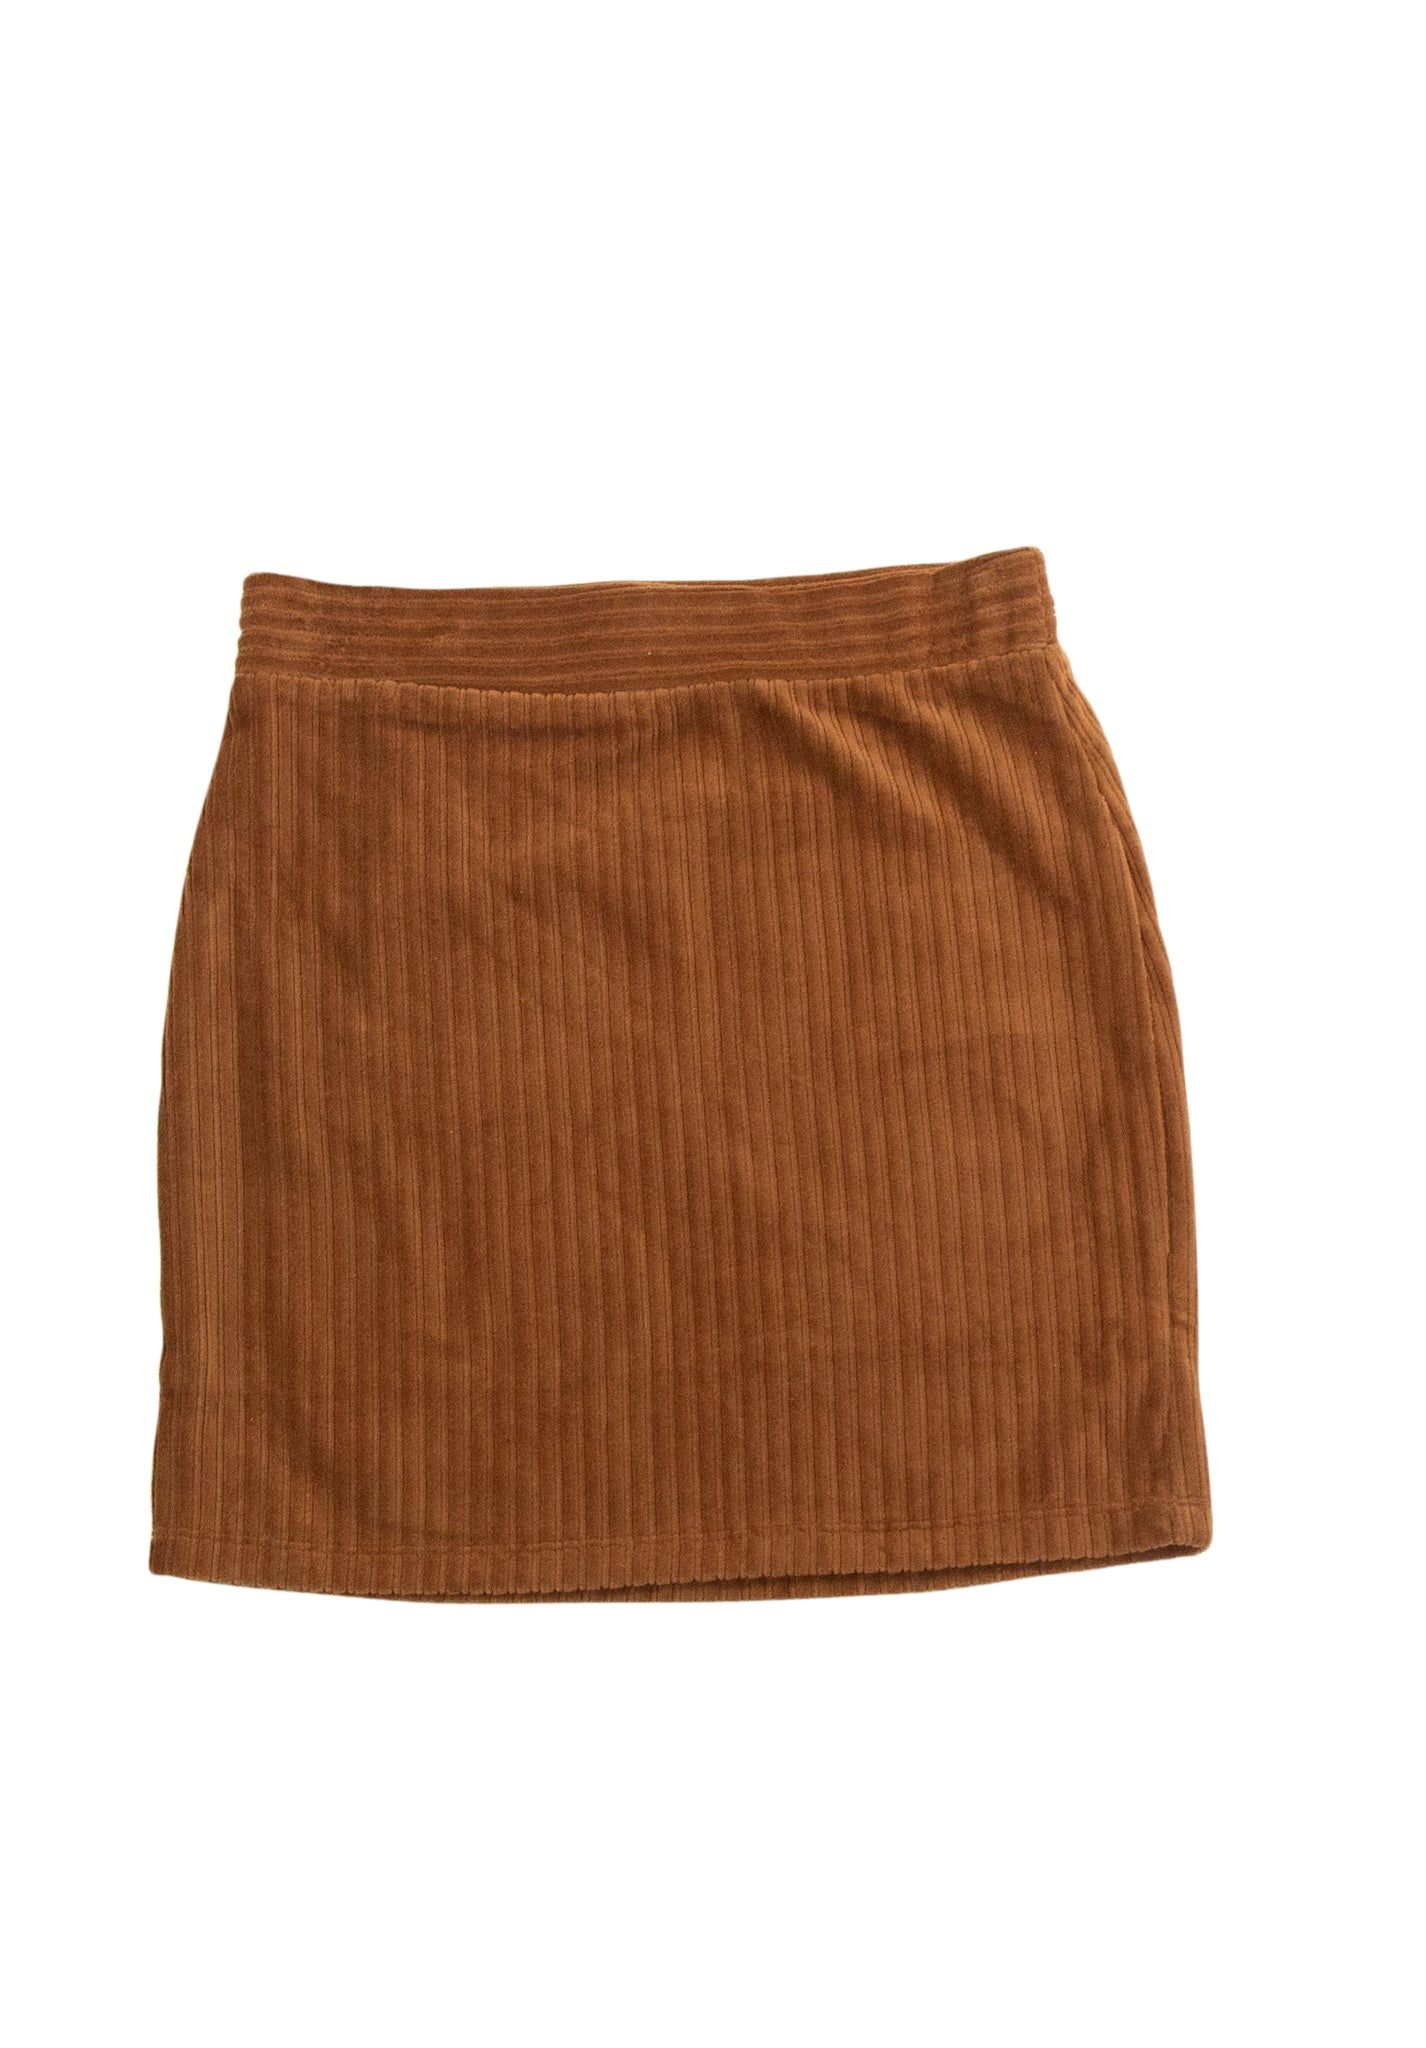 Urbane Skirt in Brown